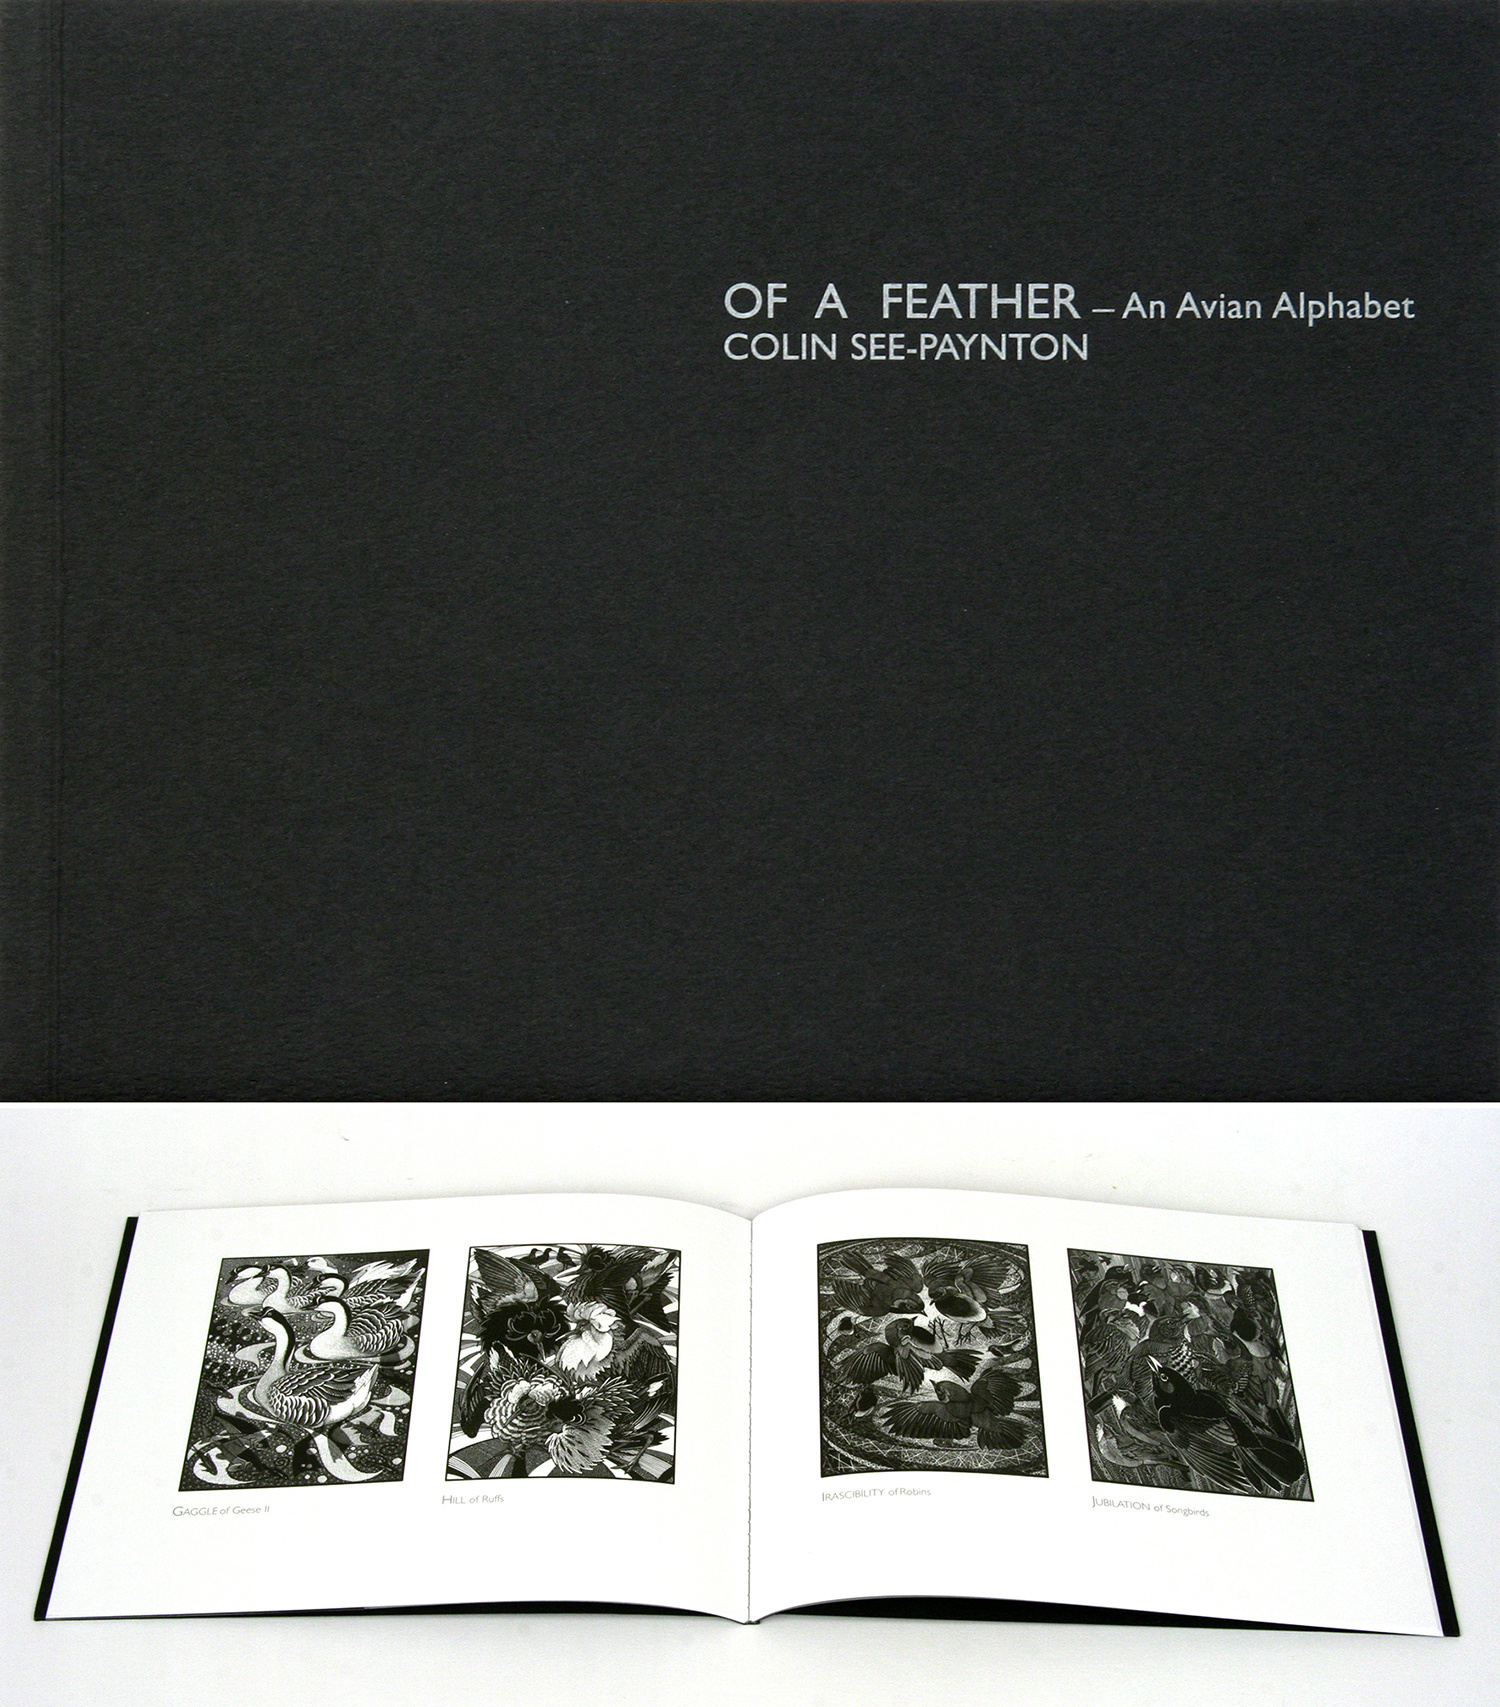 Of a Feather by Colin See-Paynton